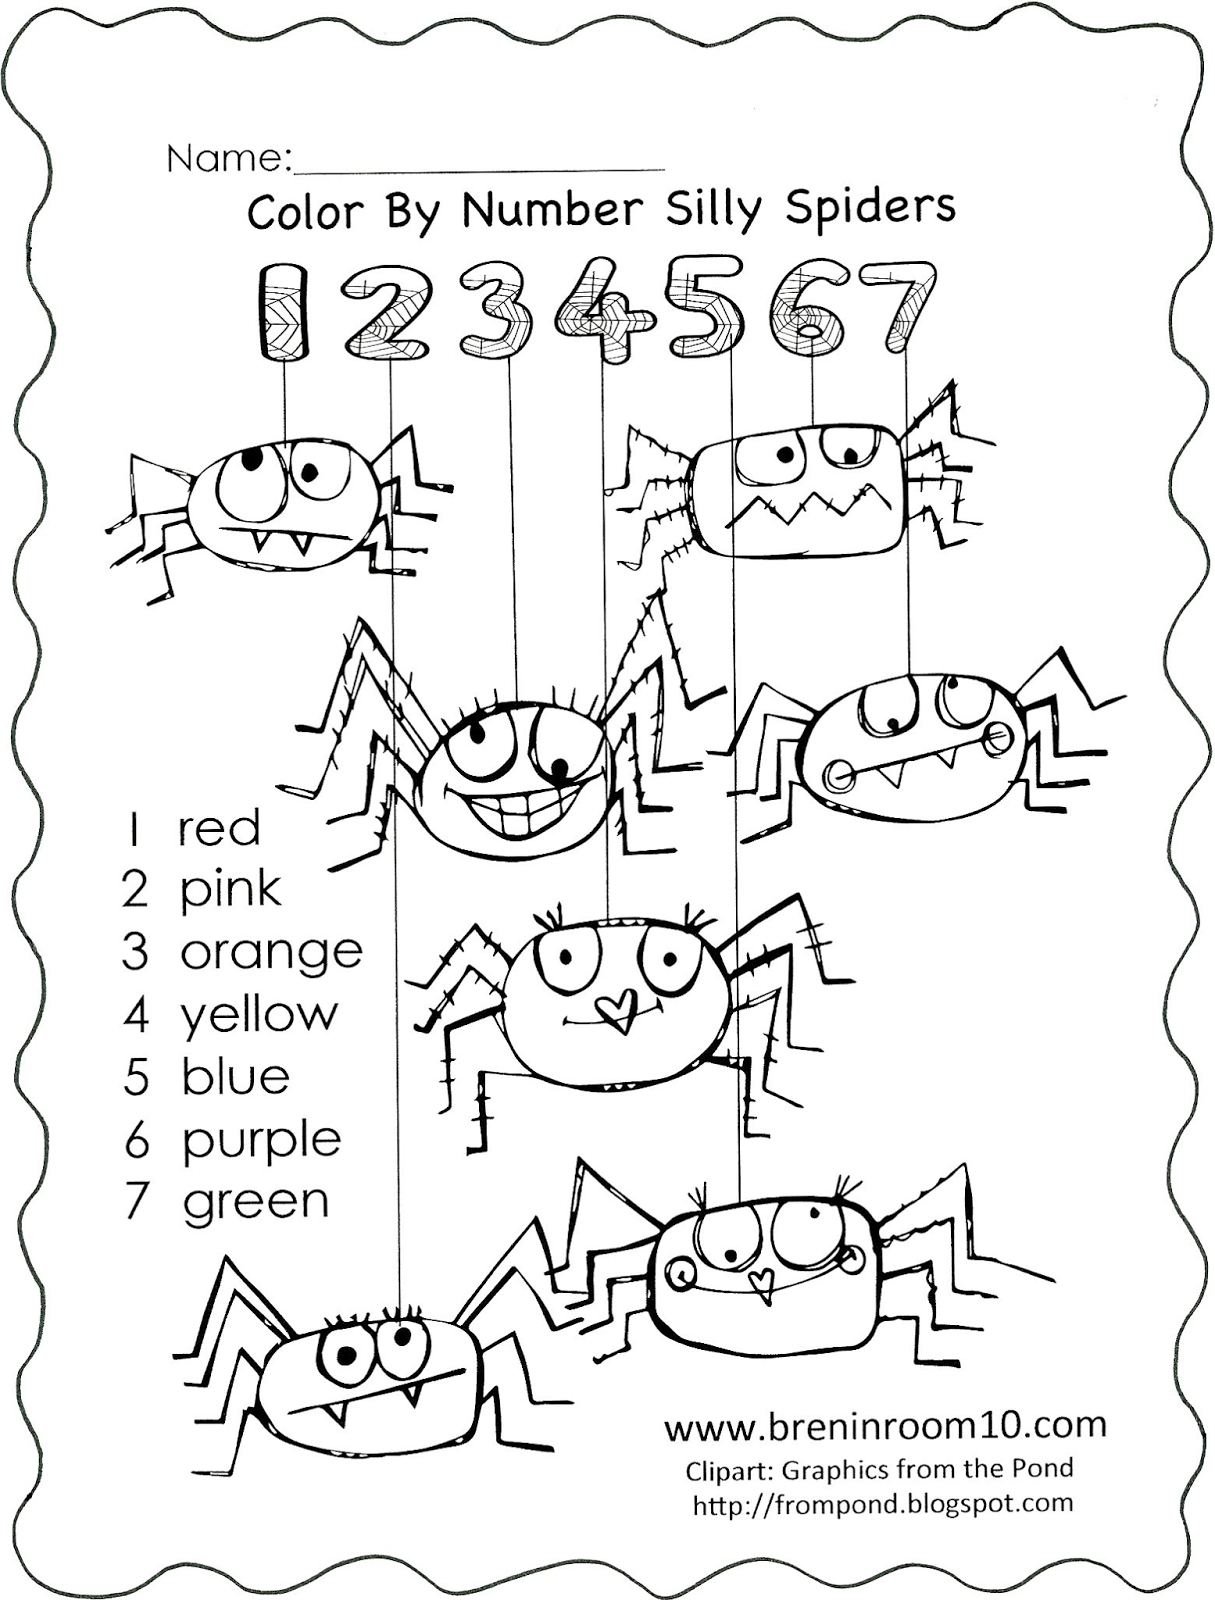 http://www.teacherspayteachers.com/Product/Color-Word-Spider-Freebie-CCSS-RFK3c-923954